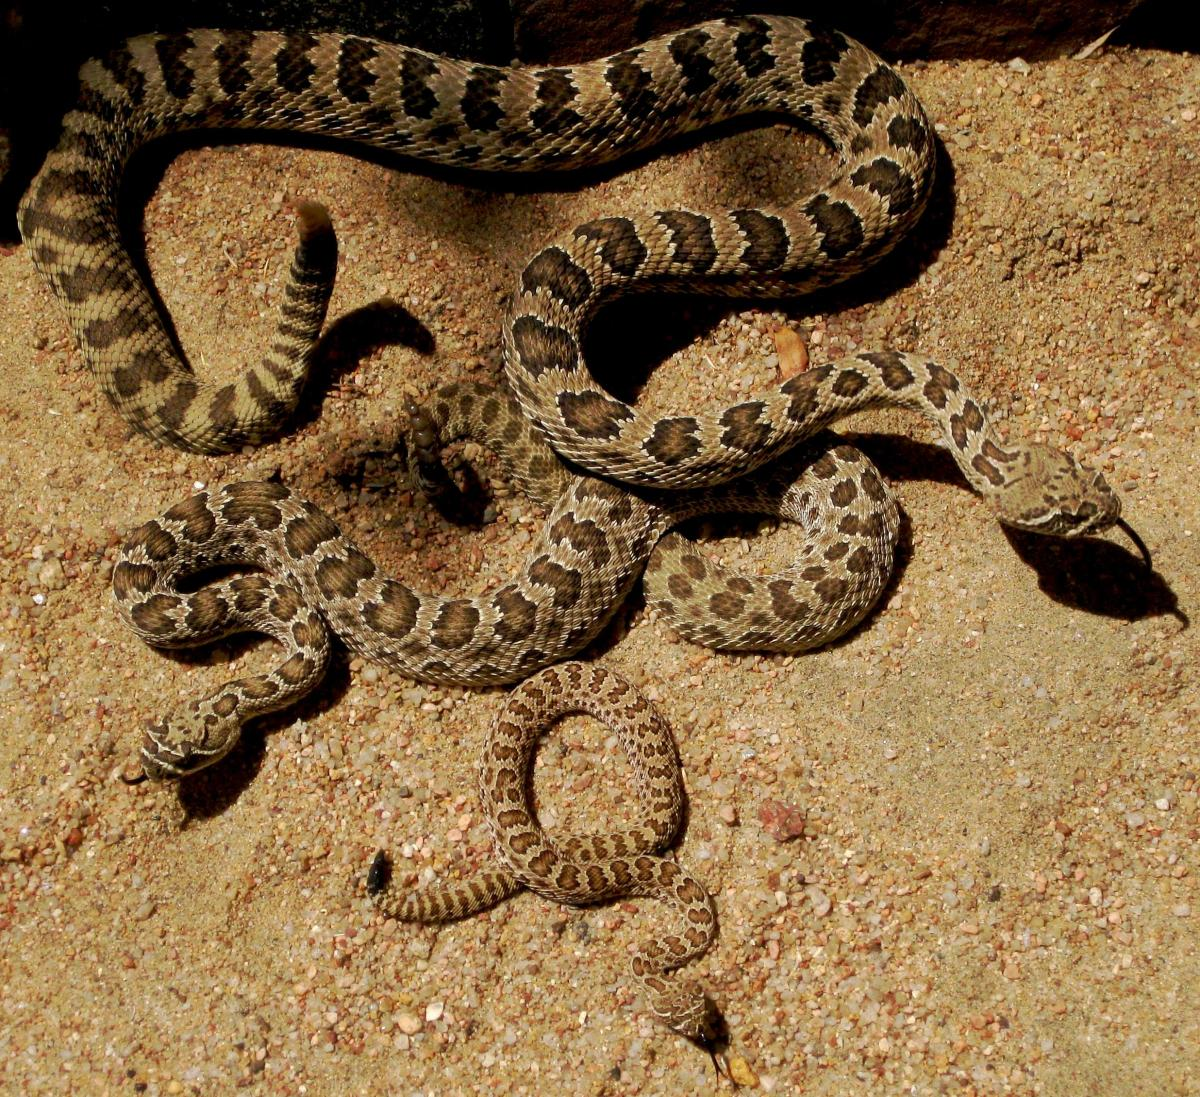 Three Prairie Rattlesnakes (Crotalus viridis viridis) of various sizes/ages to illustrate how being cold-blooded permits these snakes to thrive in low-energy environments, such as deserts.